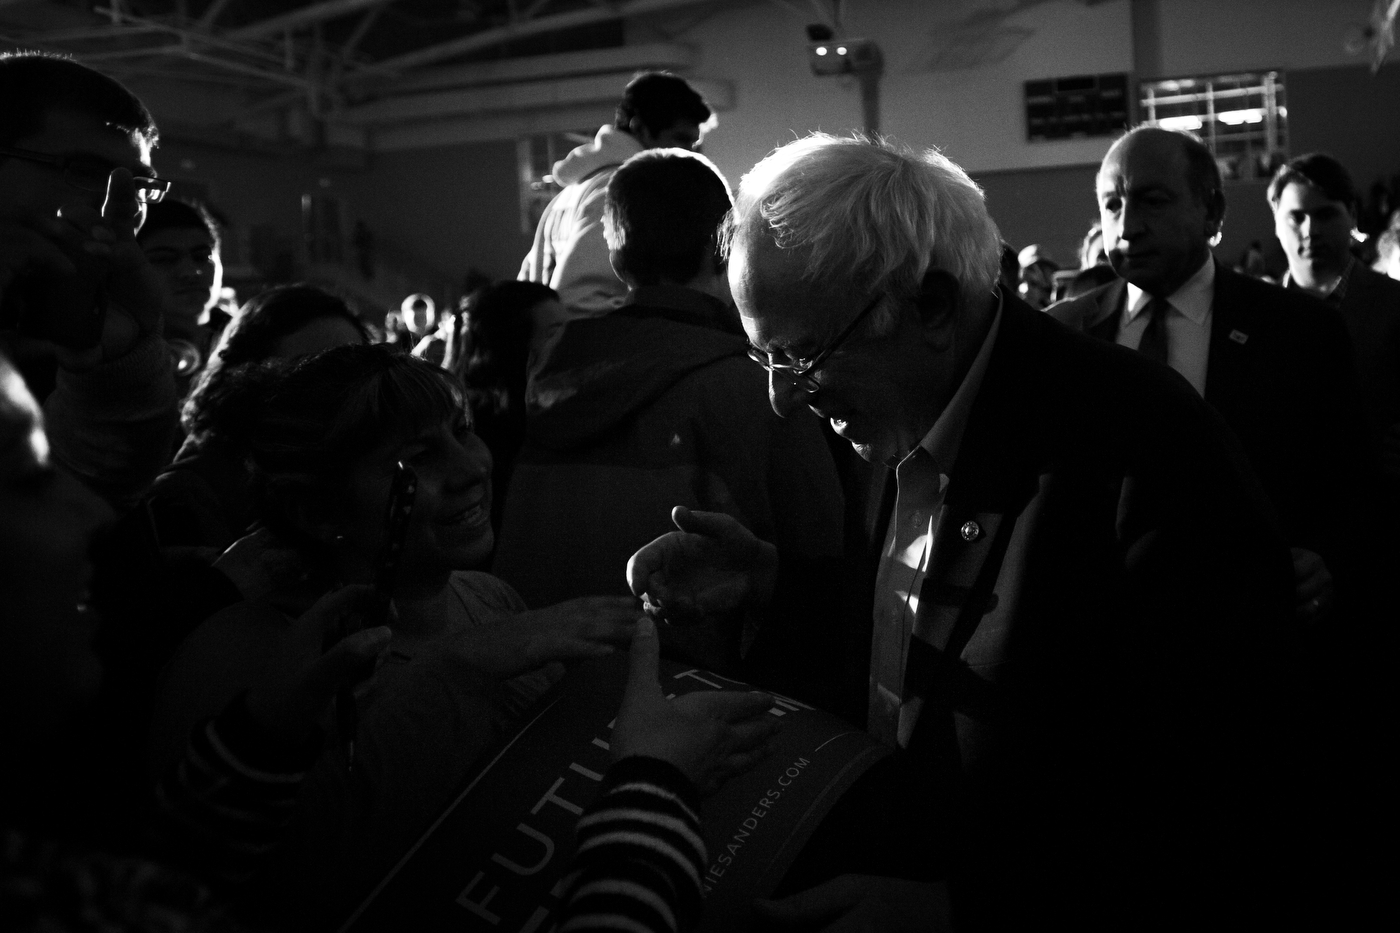 U.S. Democratic presidential candidate Bernie Sanders greets supporters after speaking during a campaign event at Grinnell College in Grinnell, Iowa on January 25.